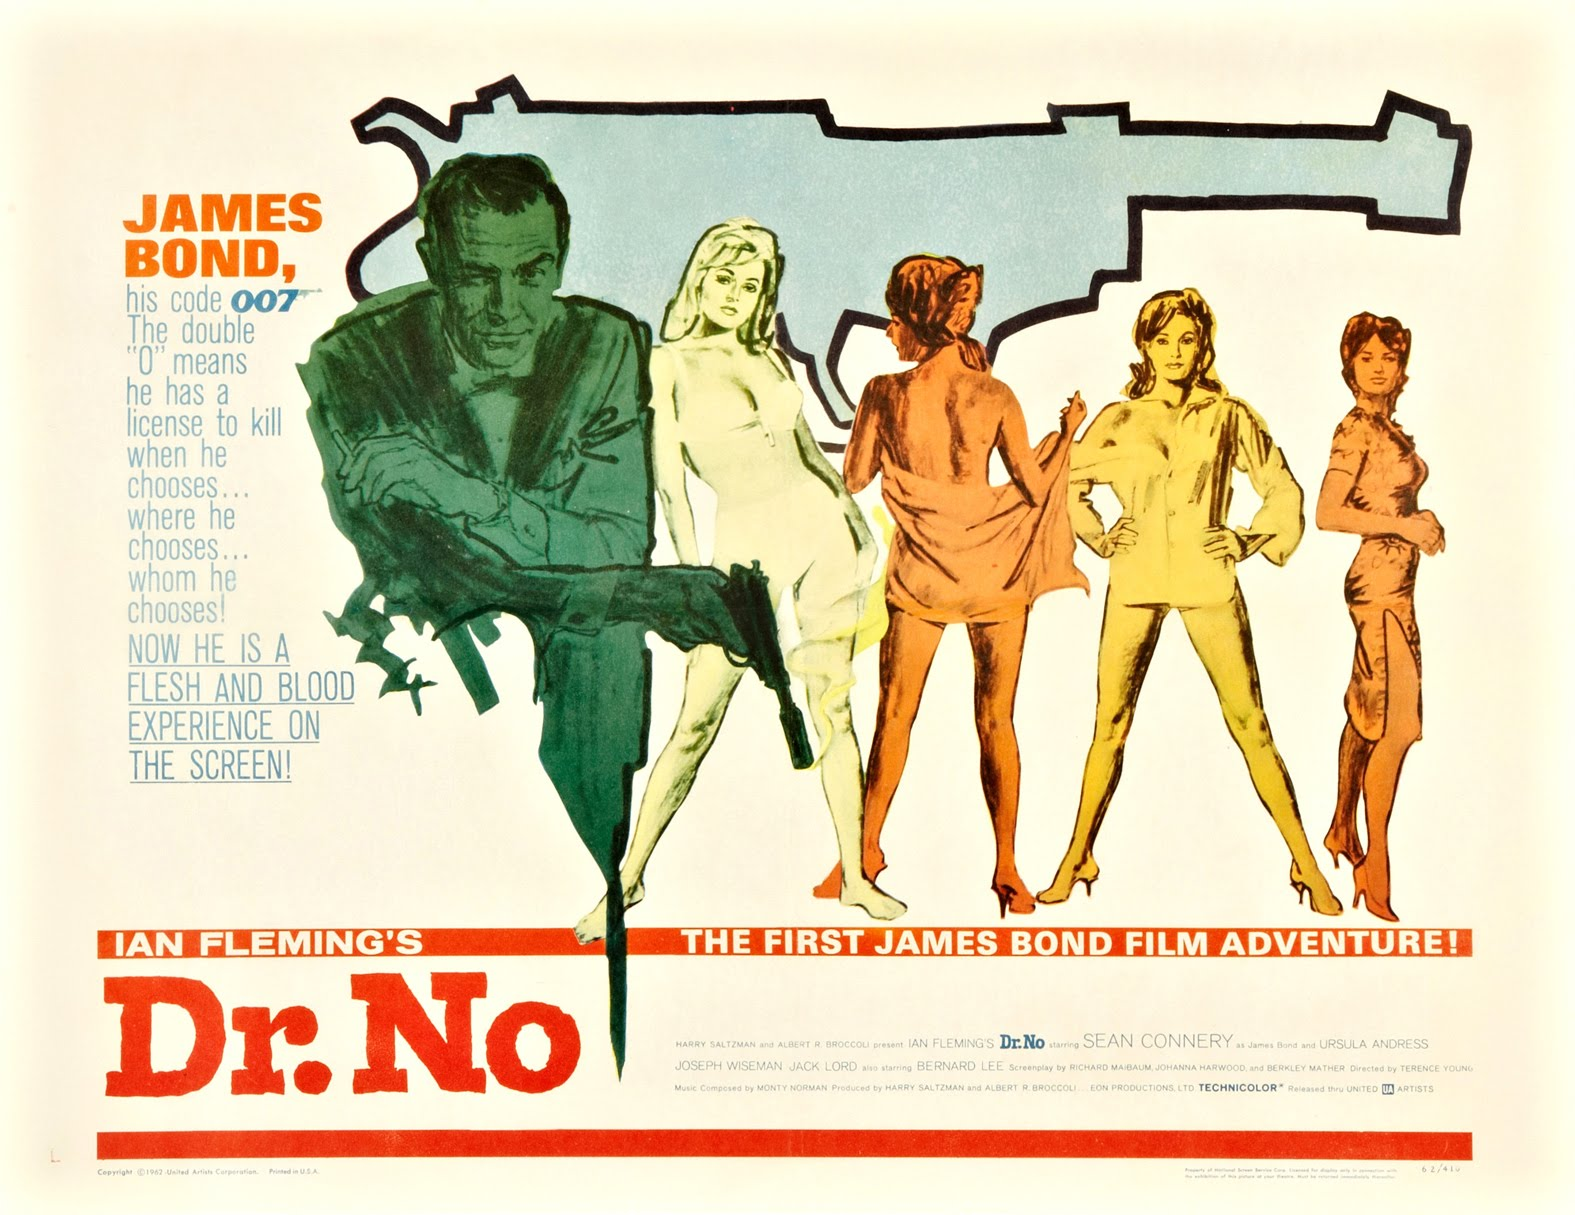 Dr. No Wallpaper and Background | 1280x960 | ID:471171